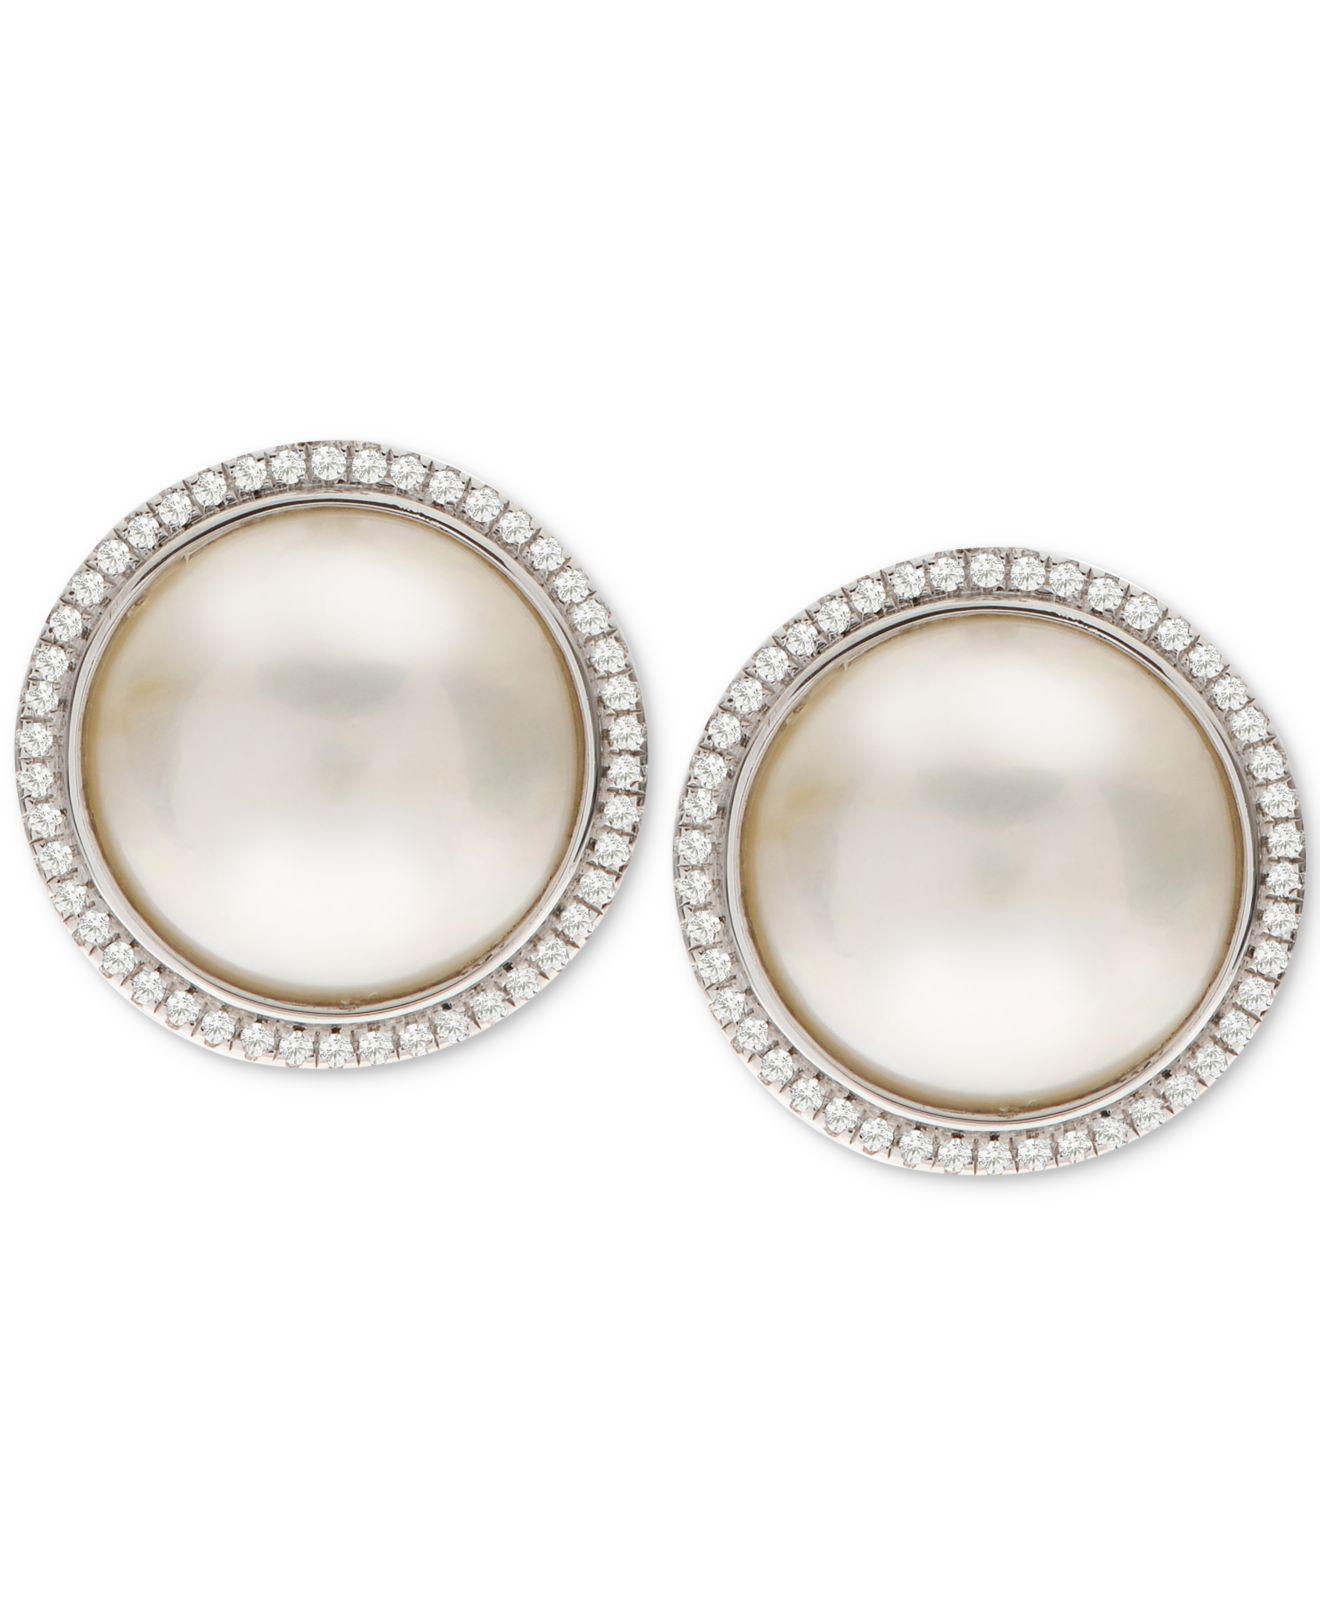 stud silver earrings p picture starburst sterling yurman ebay david of s pearl